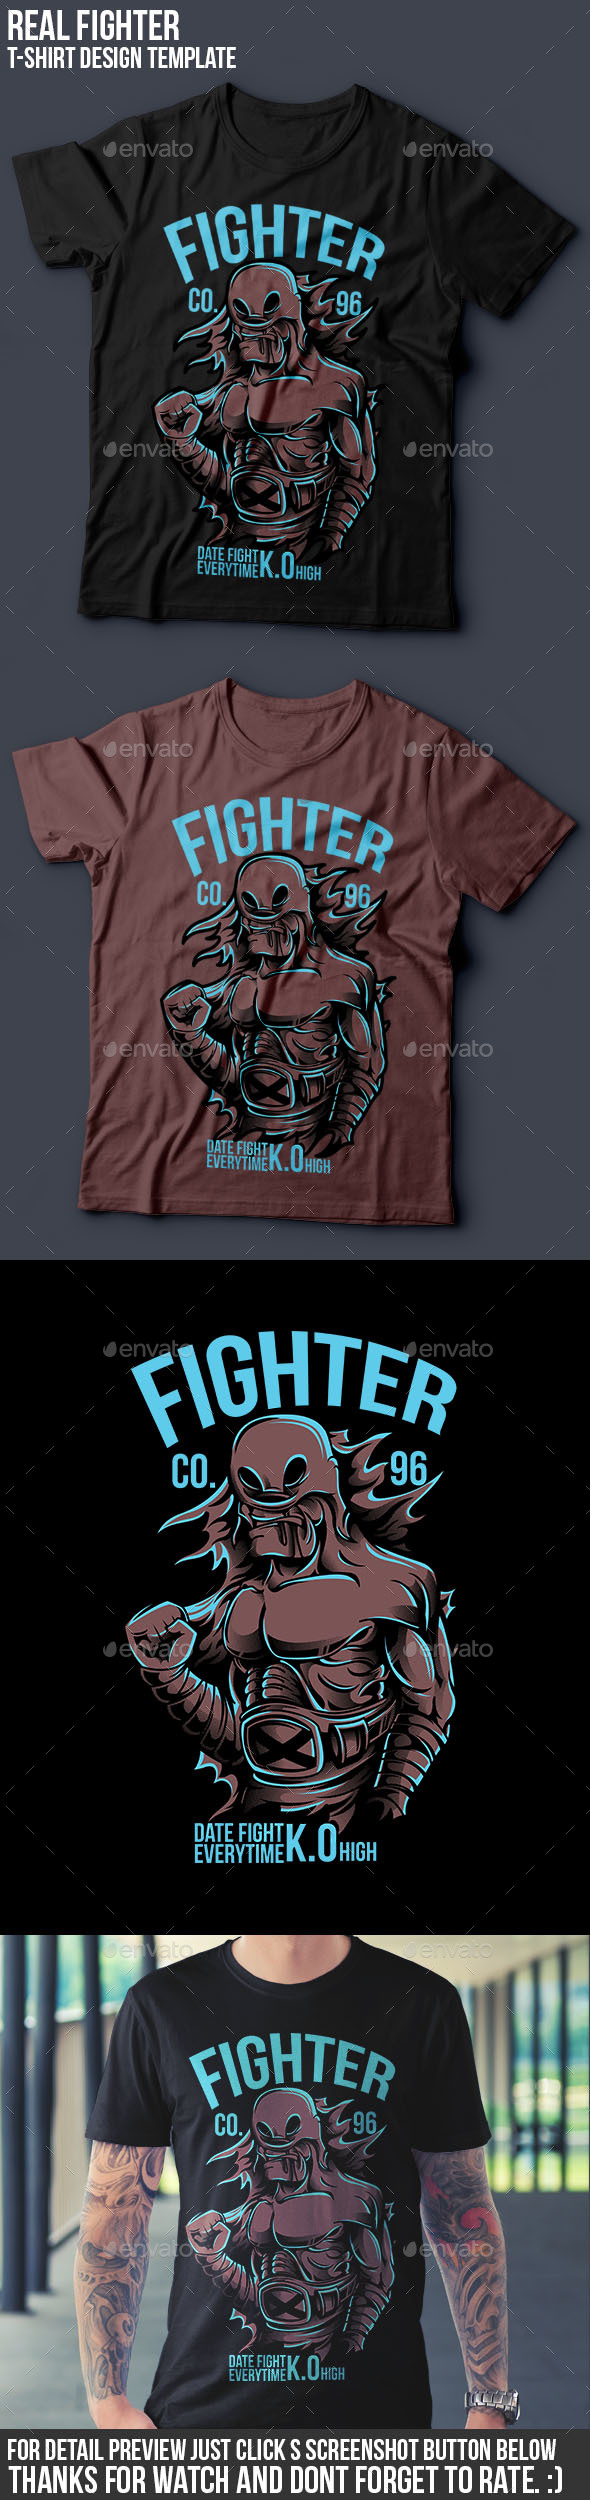 Real Fighter - Sports & Teams T-Shirts